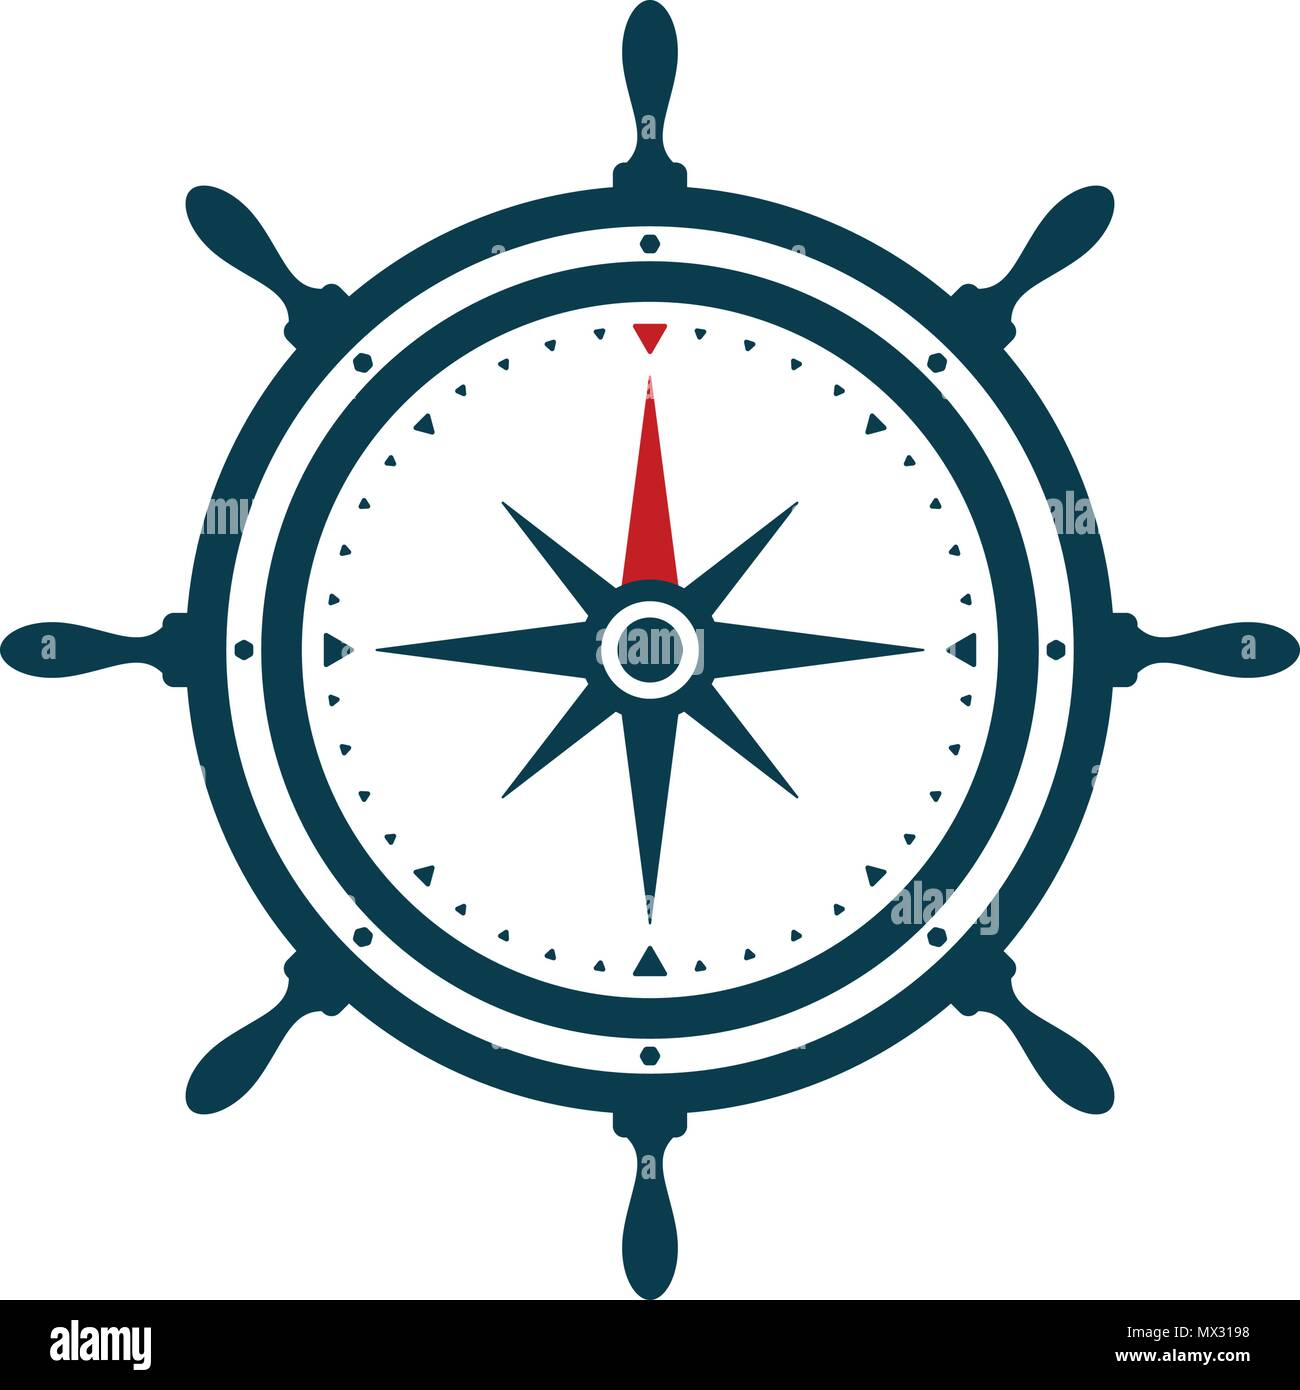 95a84026e Ship wheel and compass rose on white background. Nautical icon design.